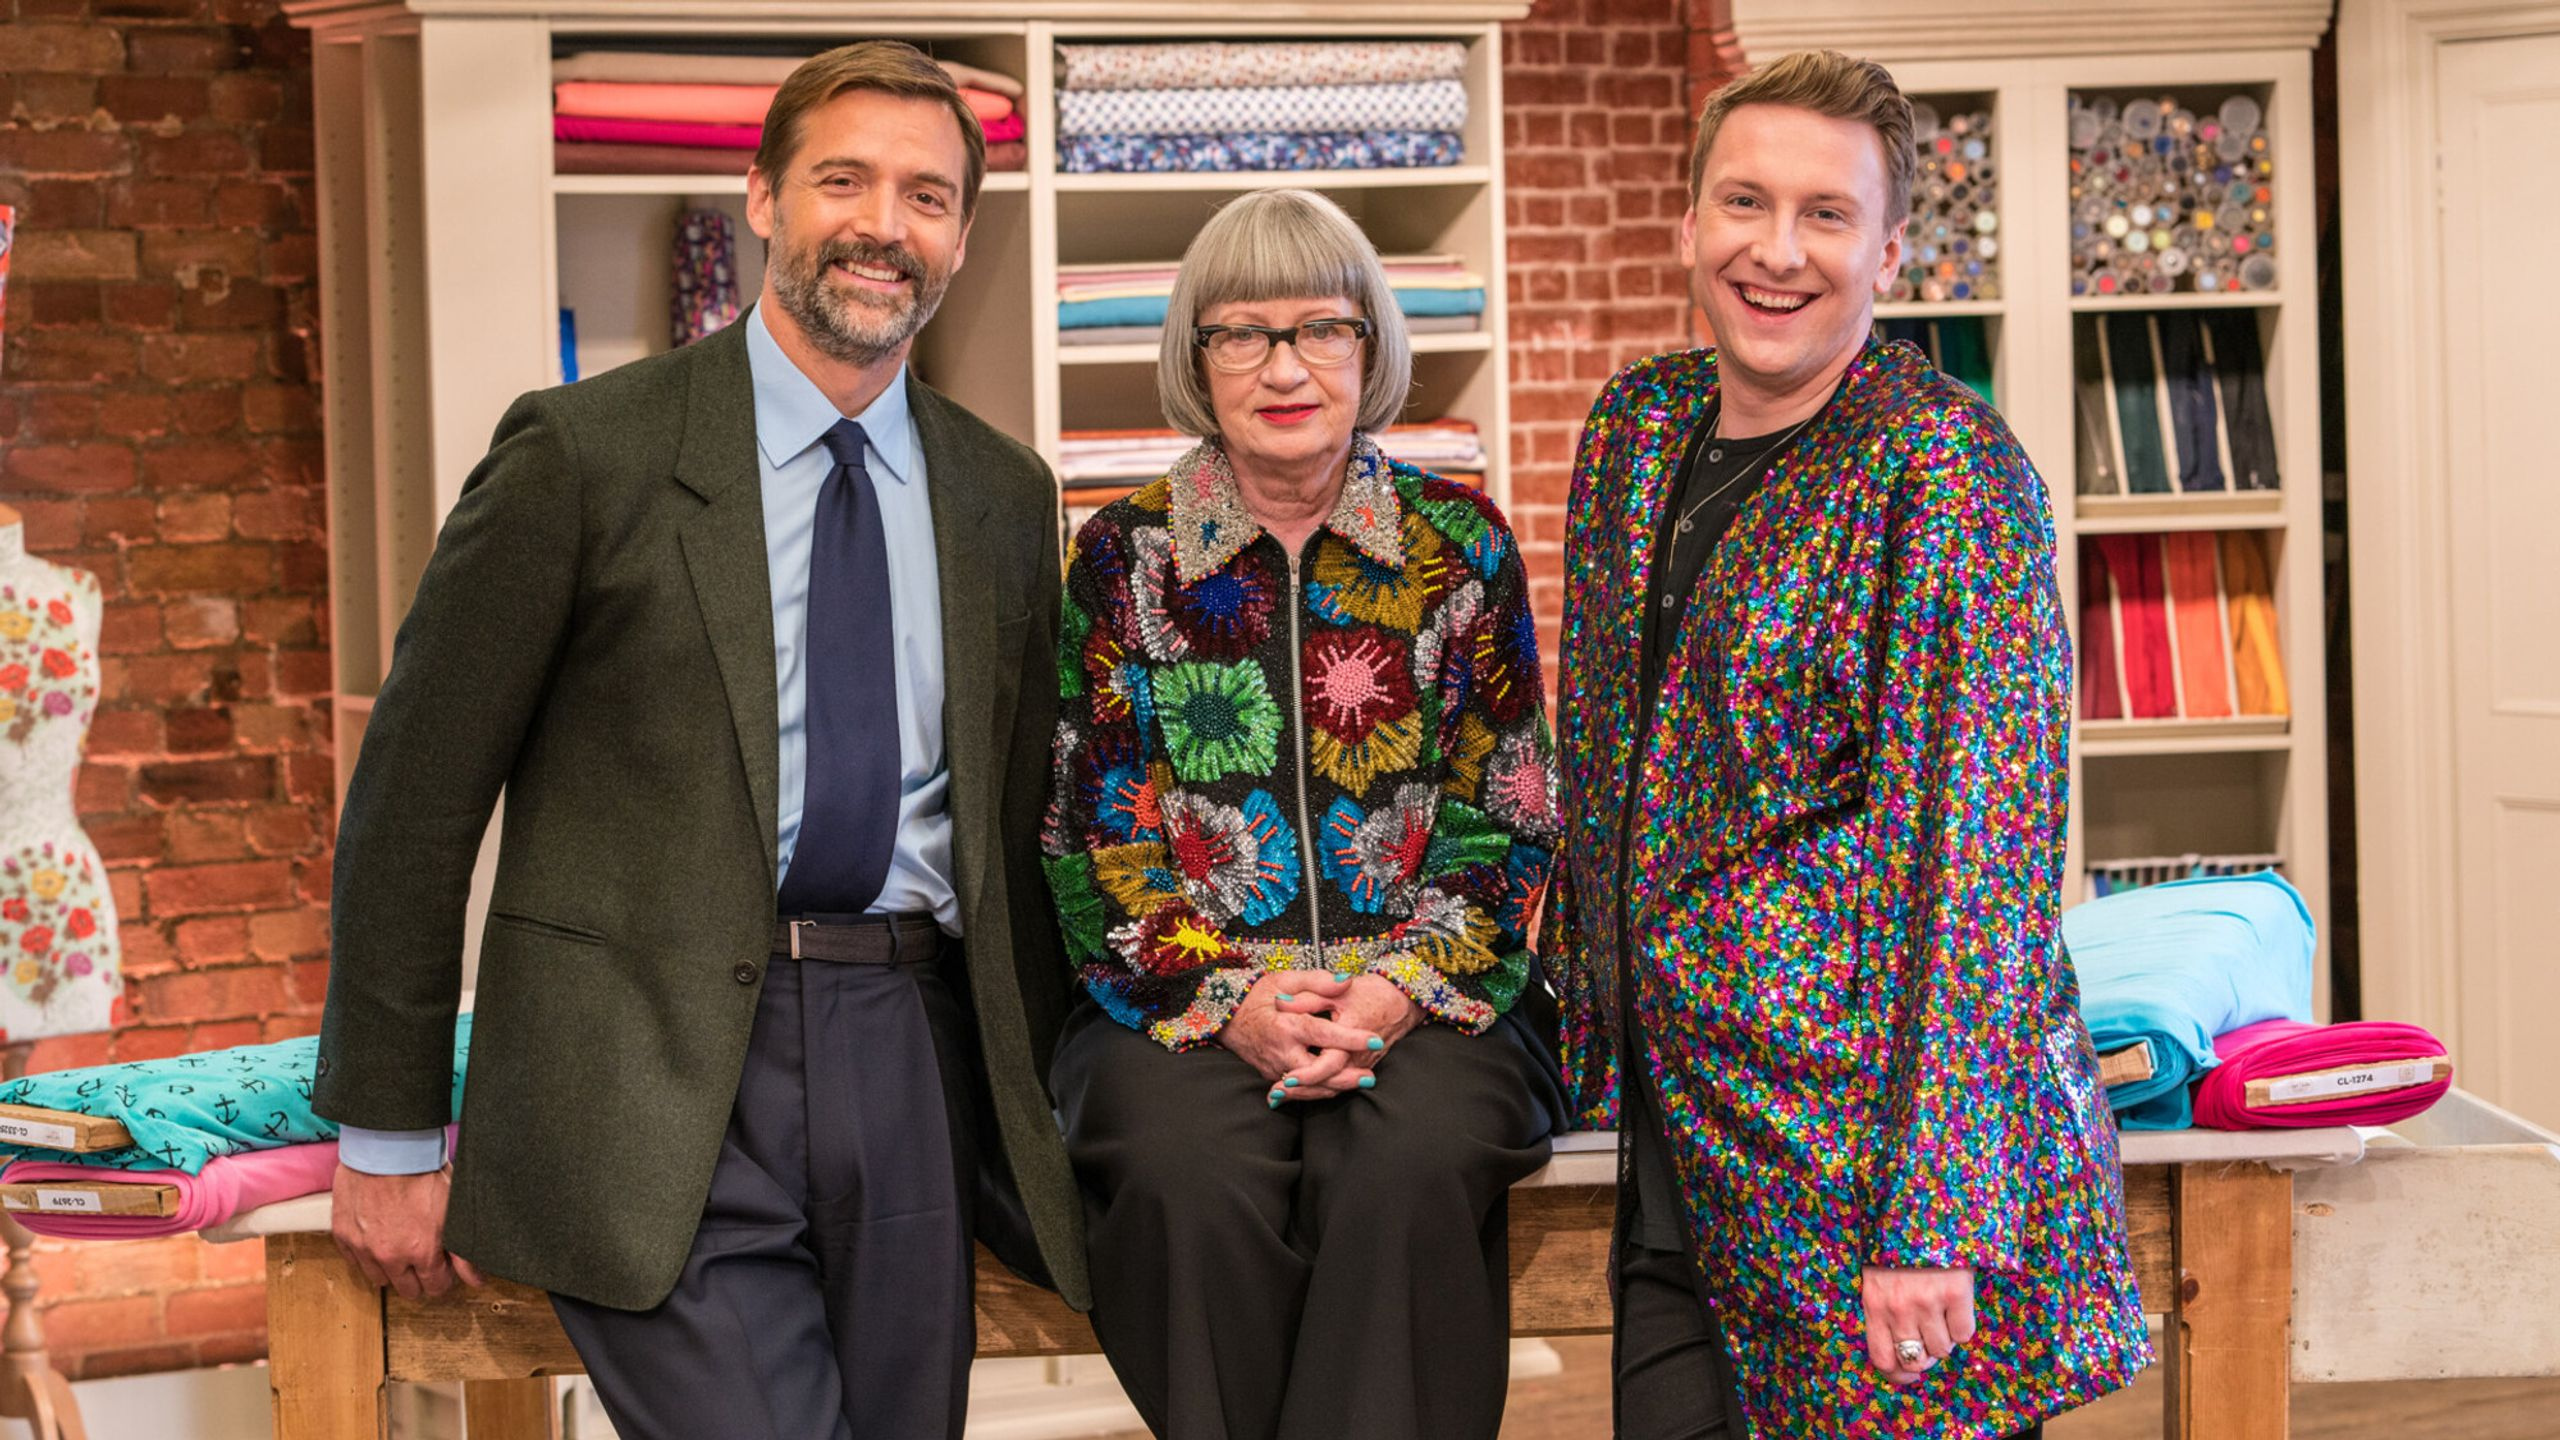 The Great British Sewing Bee Seizoen 1 Afl. 1 - Aflevering 1